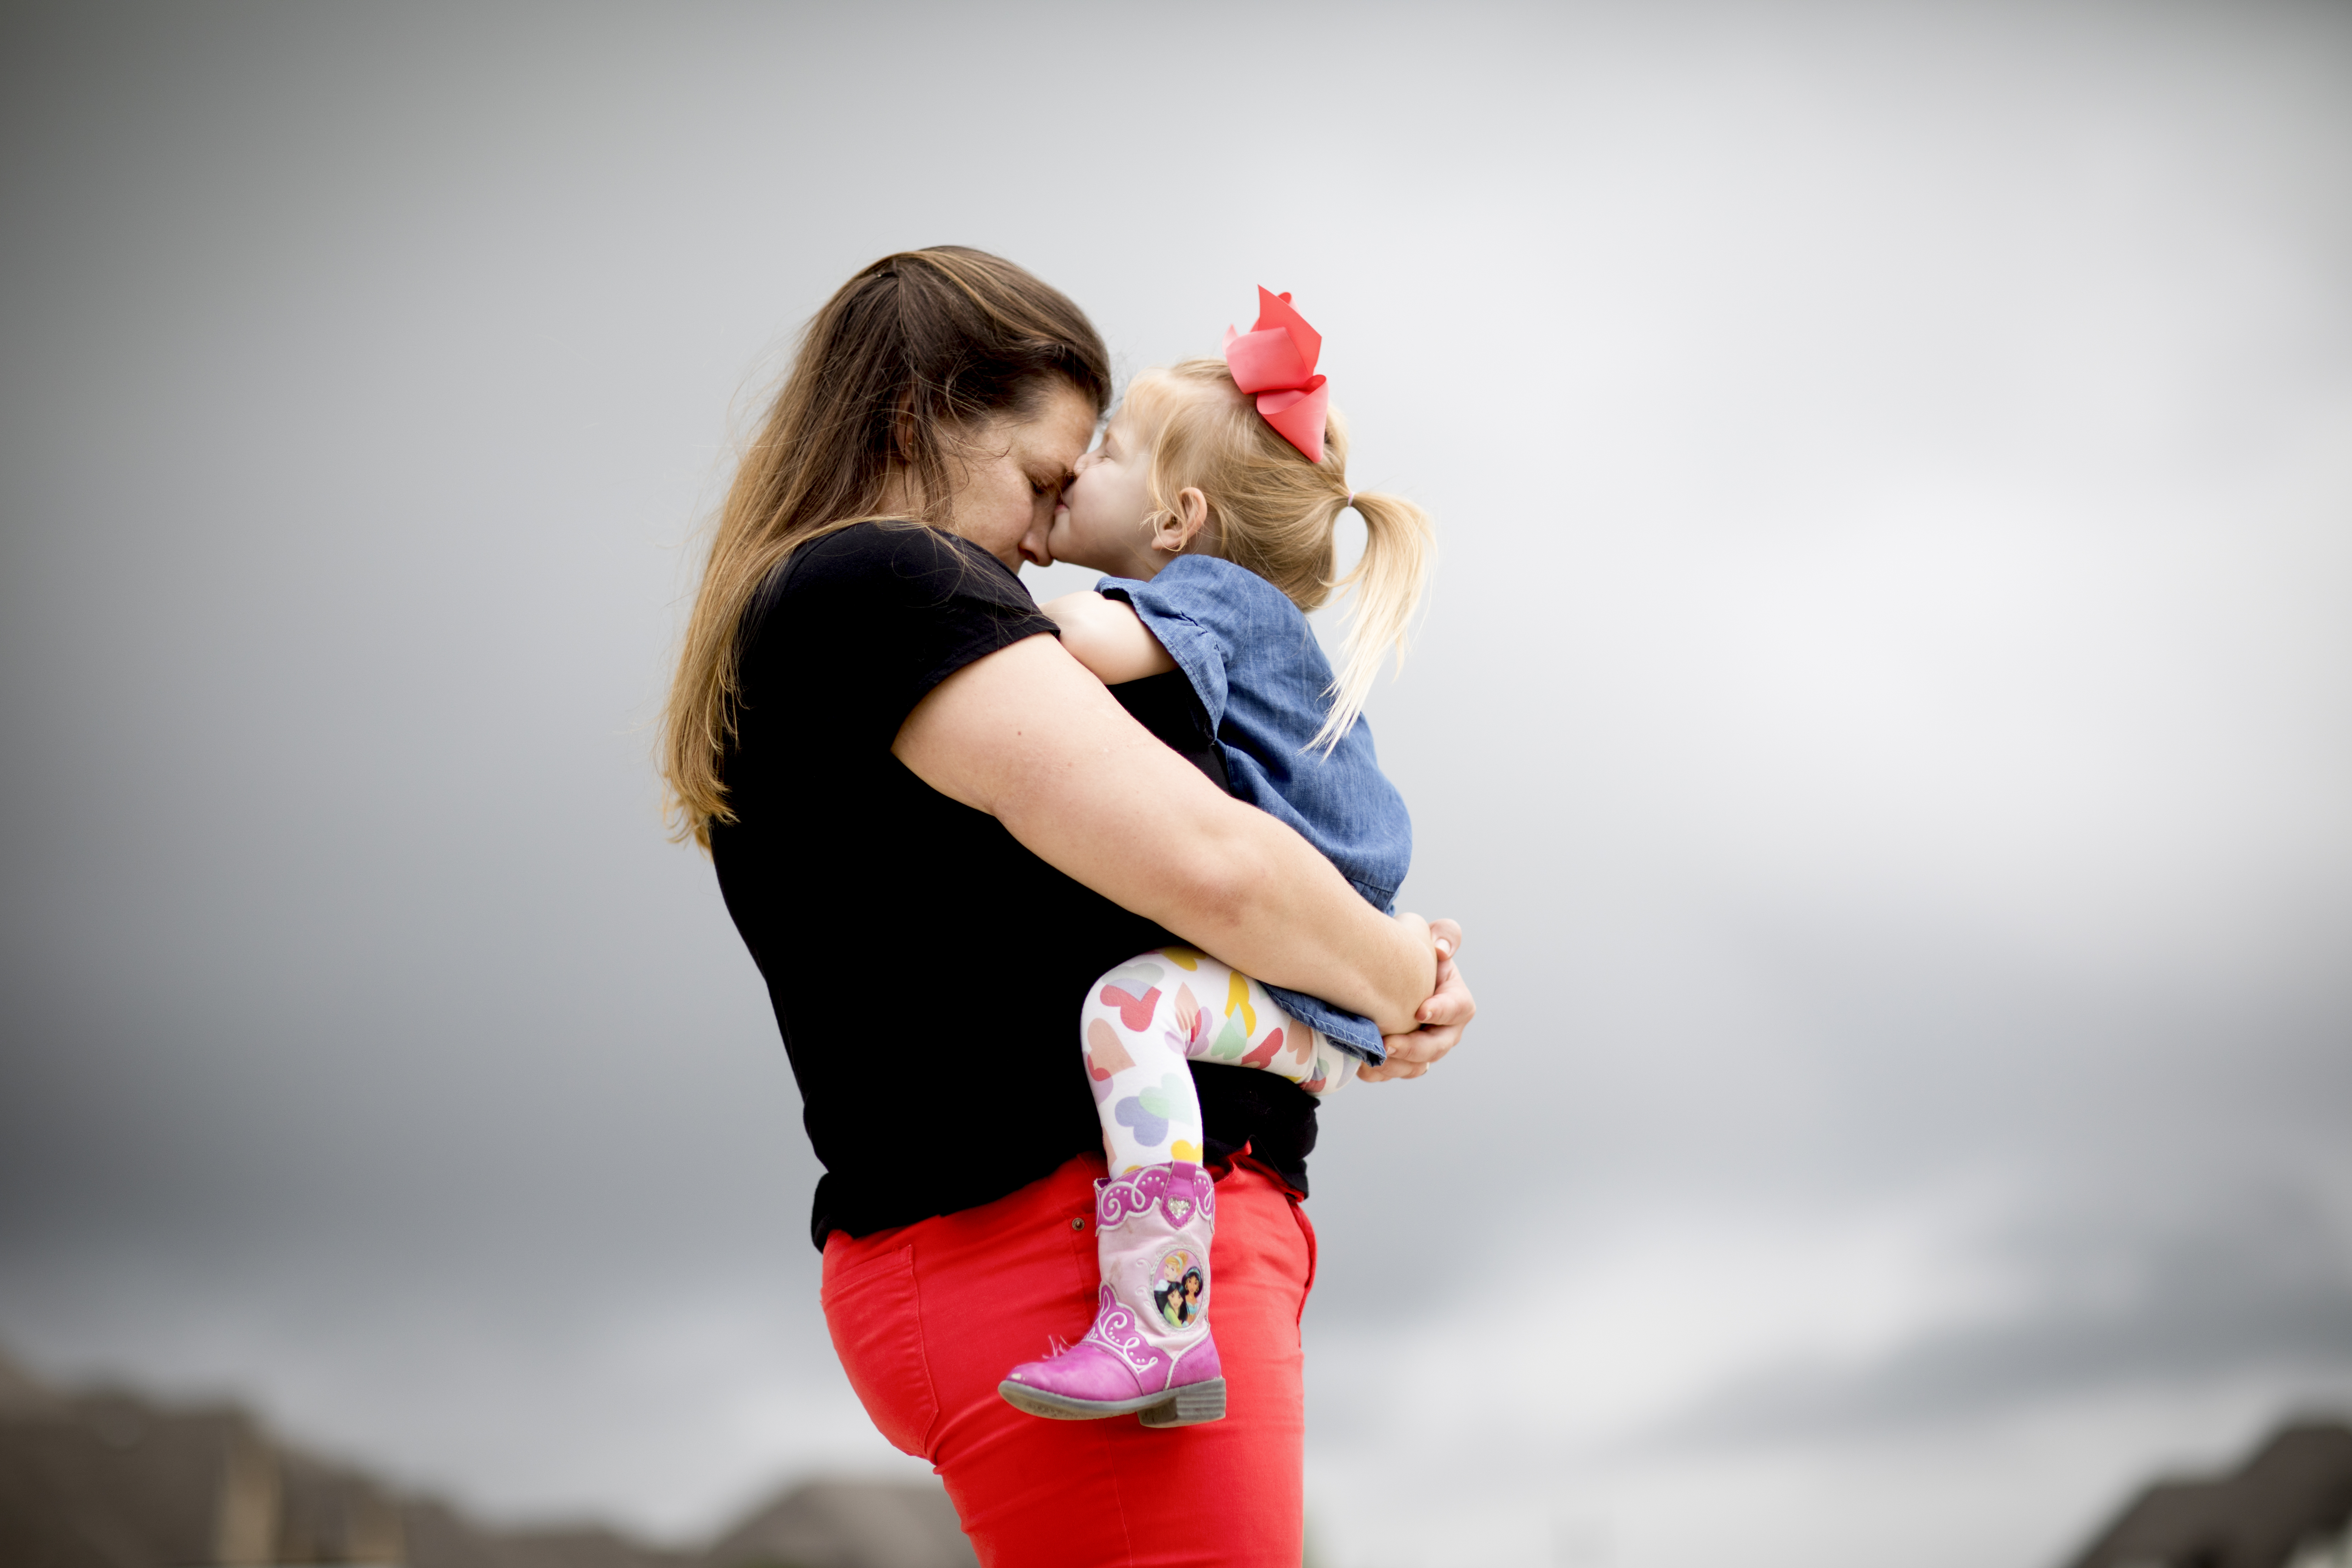 Lindsay Clark gets a kiss from her daughter Lily outside their home in Aledo, Texas, on May 9, 2019.